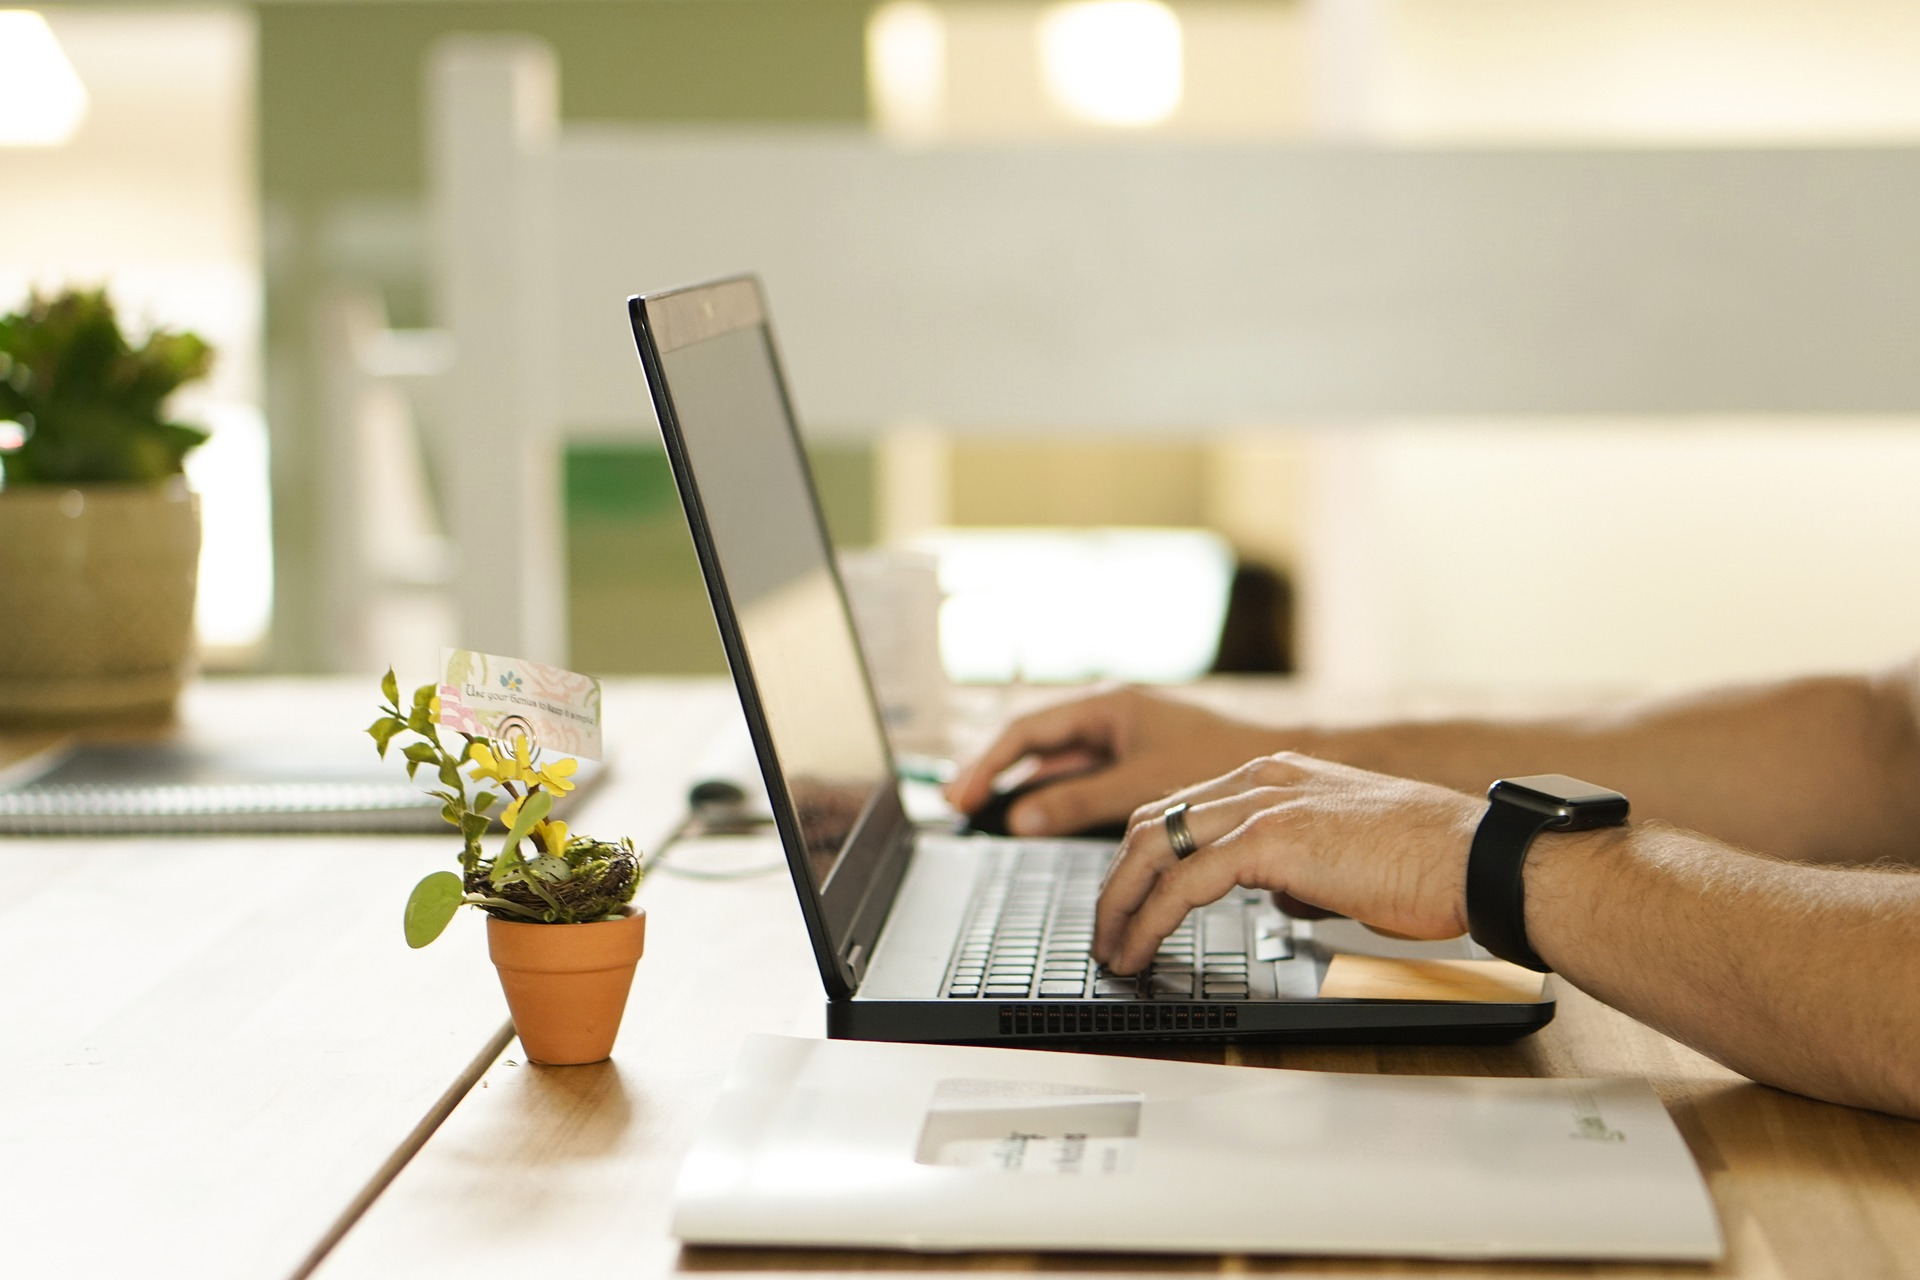 A person types on a laptop with a flower nearby while wondering is buying plants or cuttings online safe?